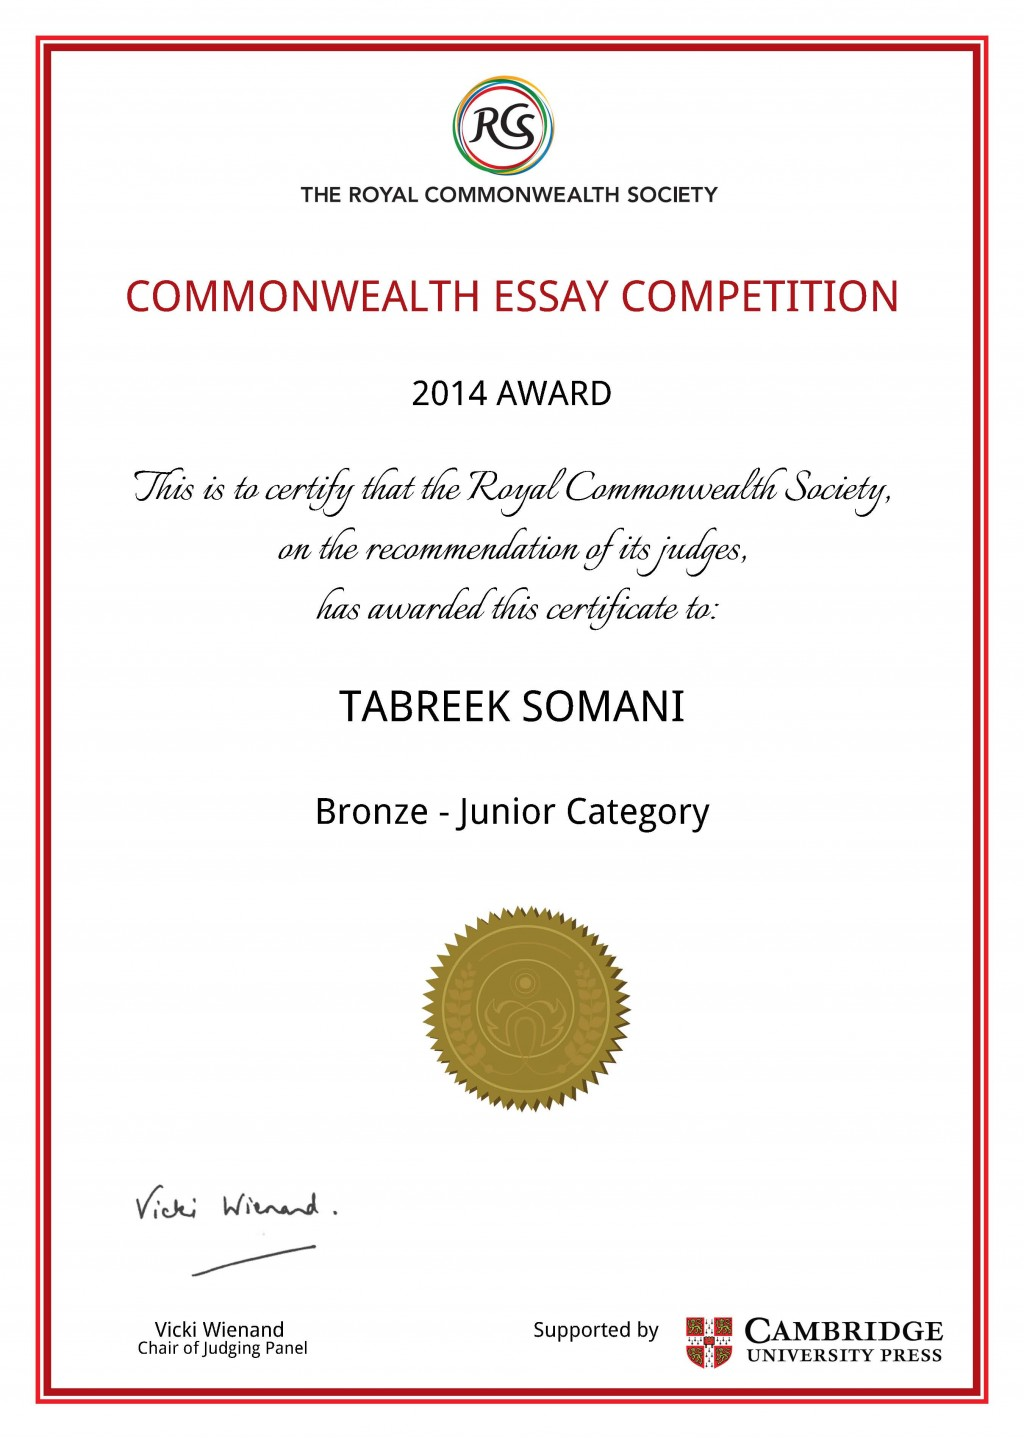 017 Certificate Ts Essay Example Contests Imposing 2014 Maryknoll Contest Winners Large